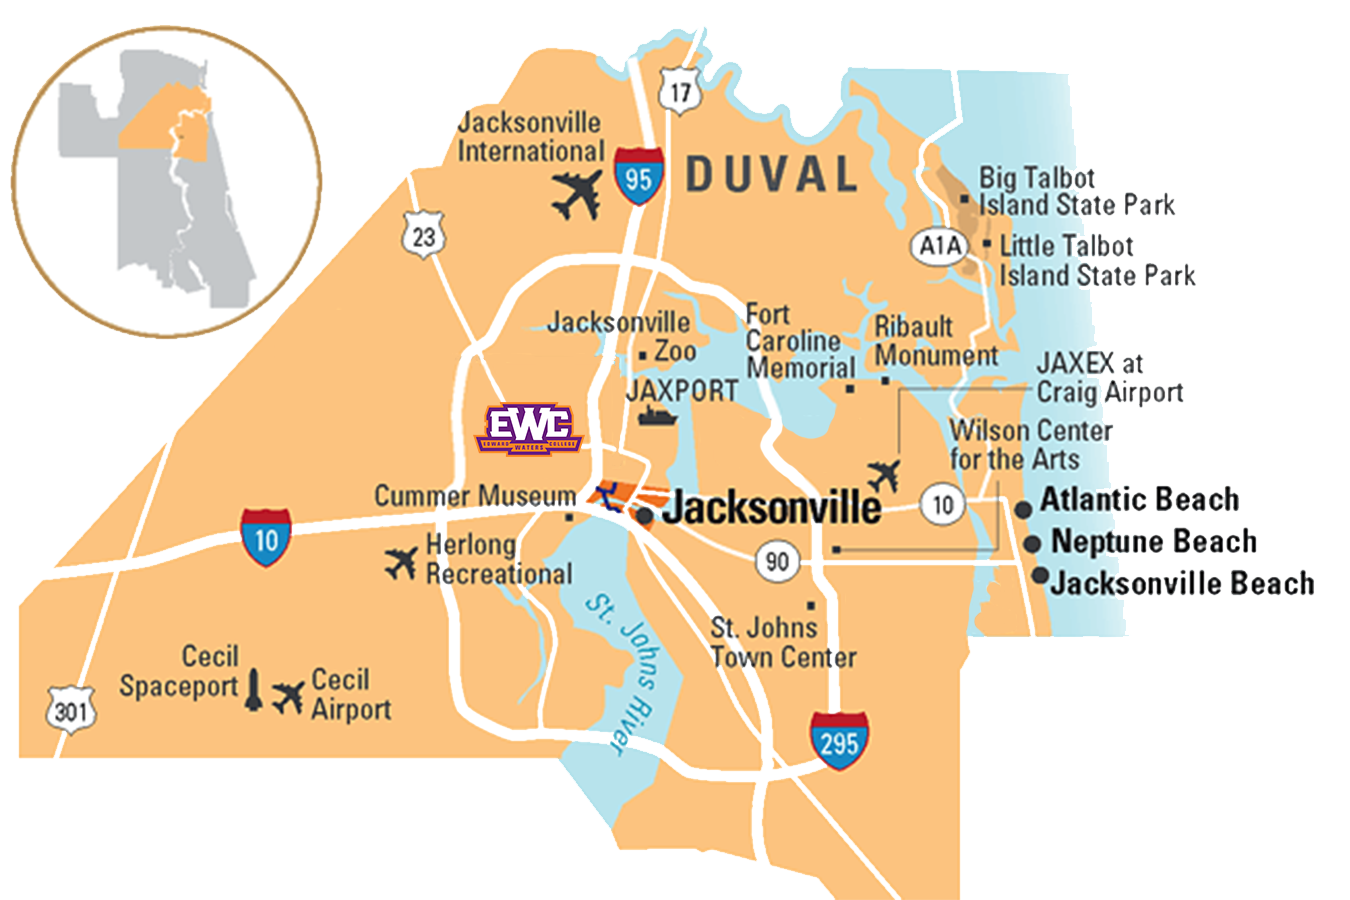 Map of Jacksonville Florida with emphasis on EWC's location